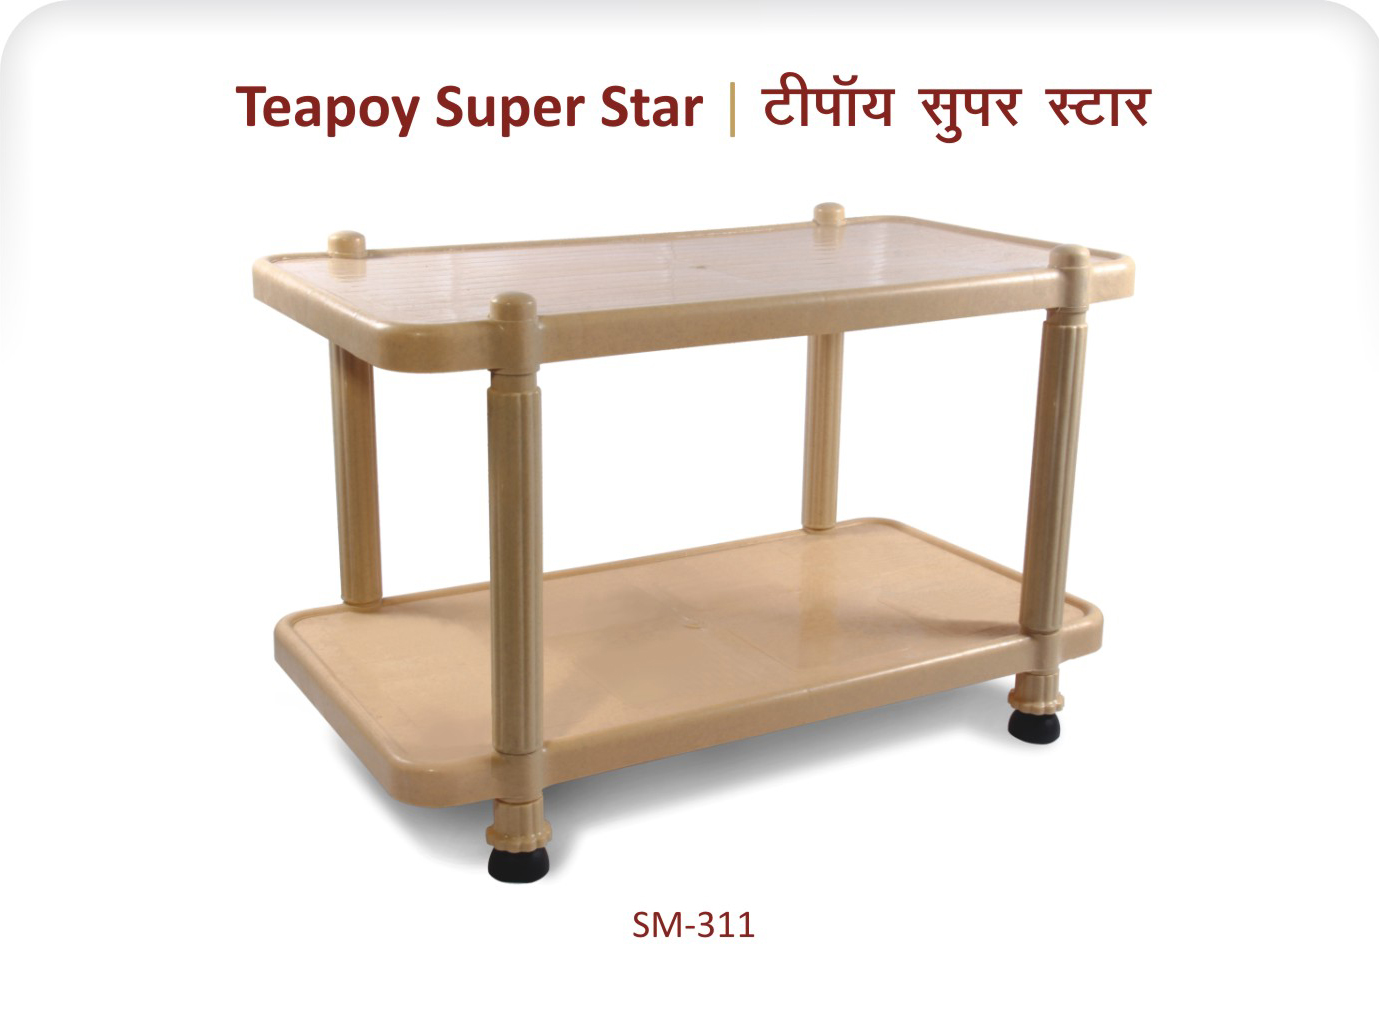 Teapoy Super Star